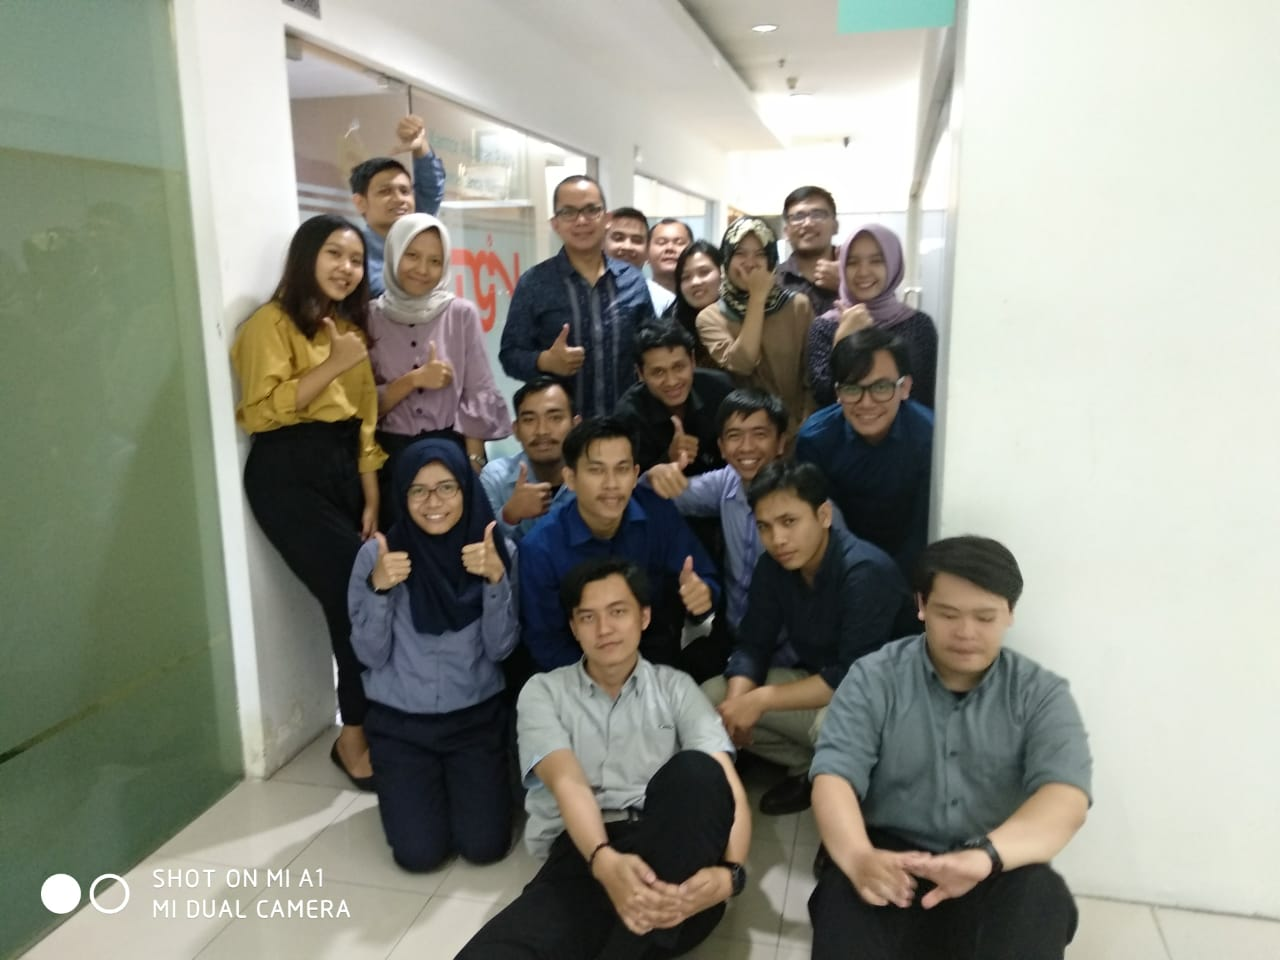 Training 11 Apr 2018: PSAK 30, 34 Dan 44